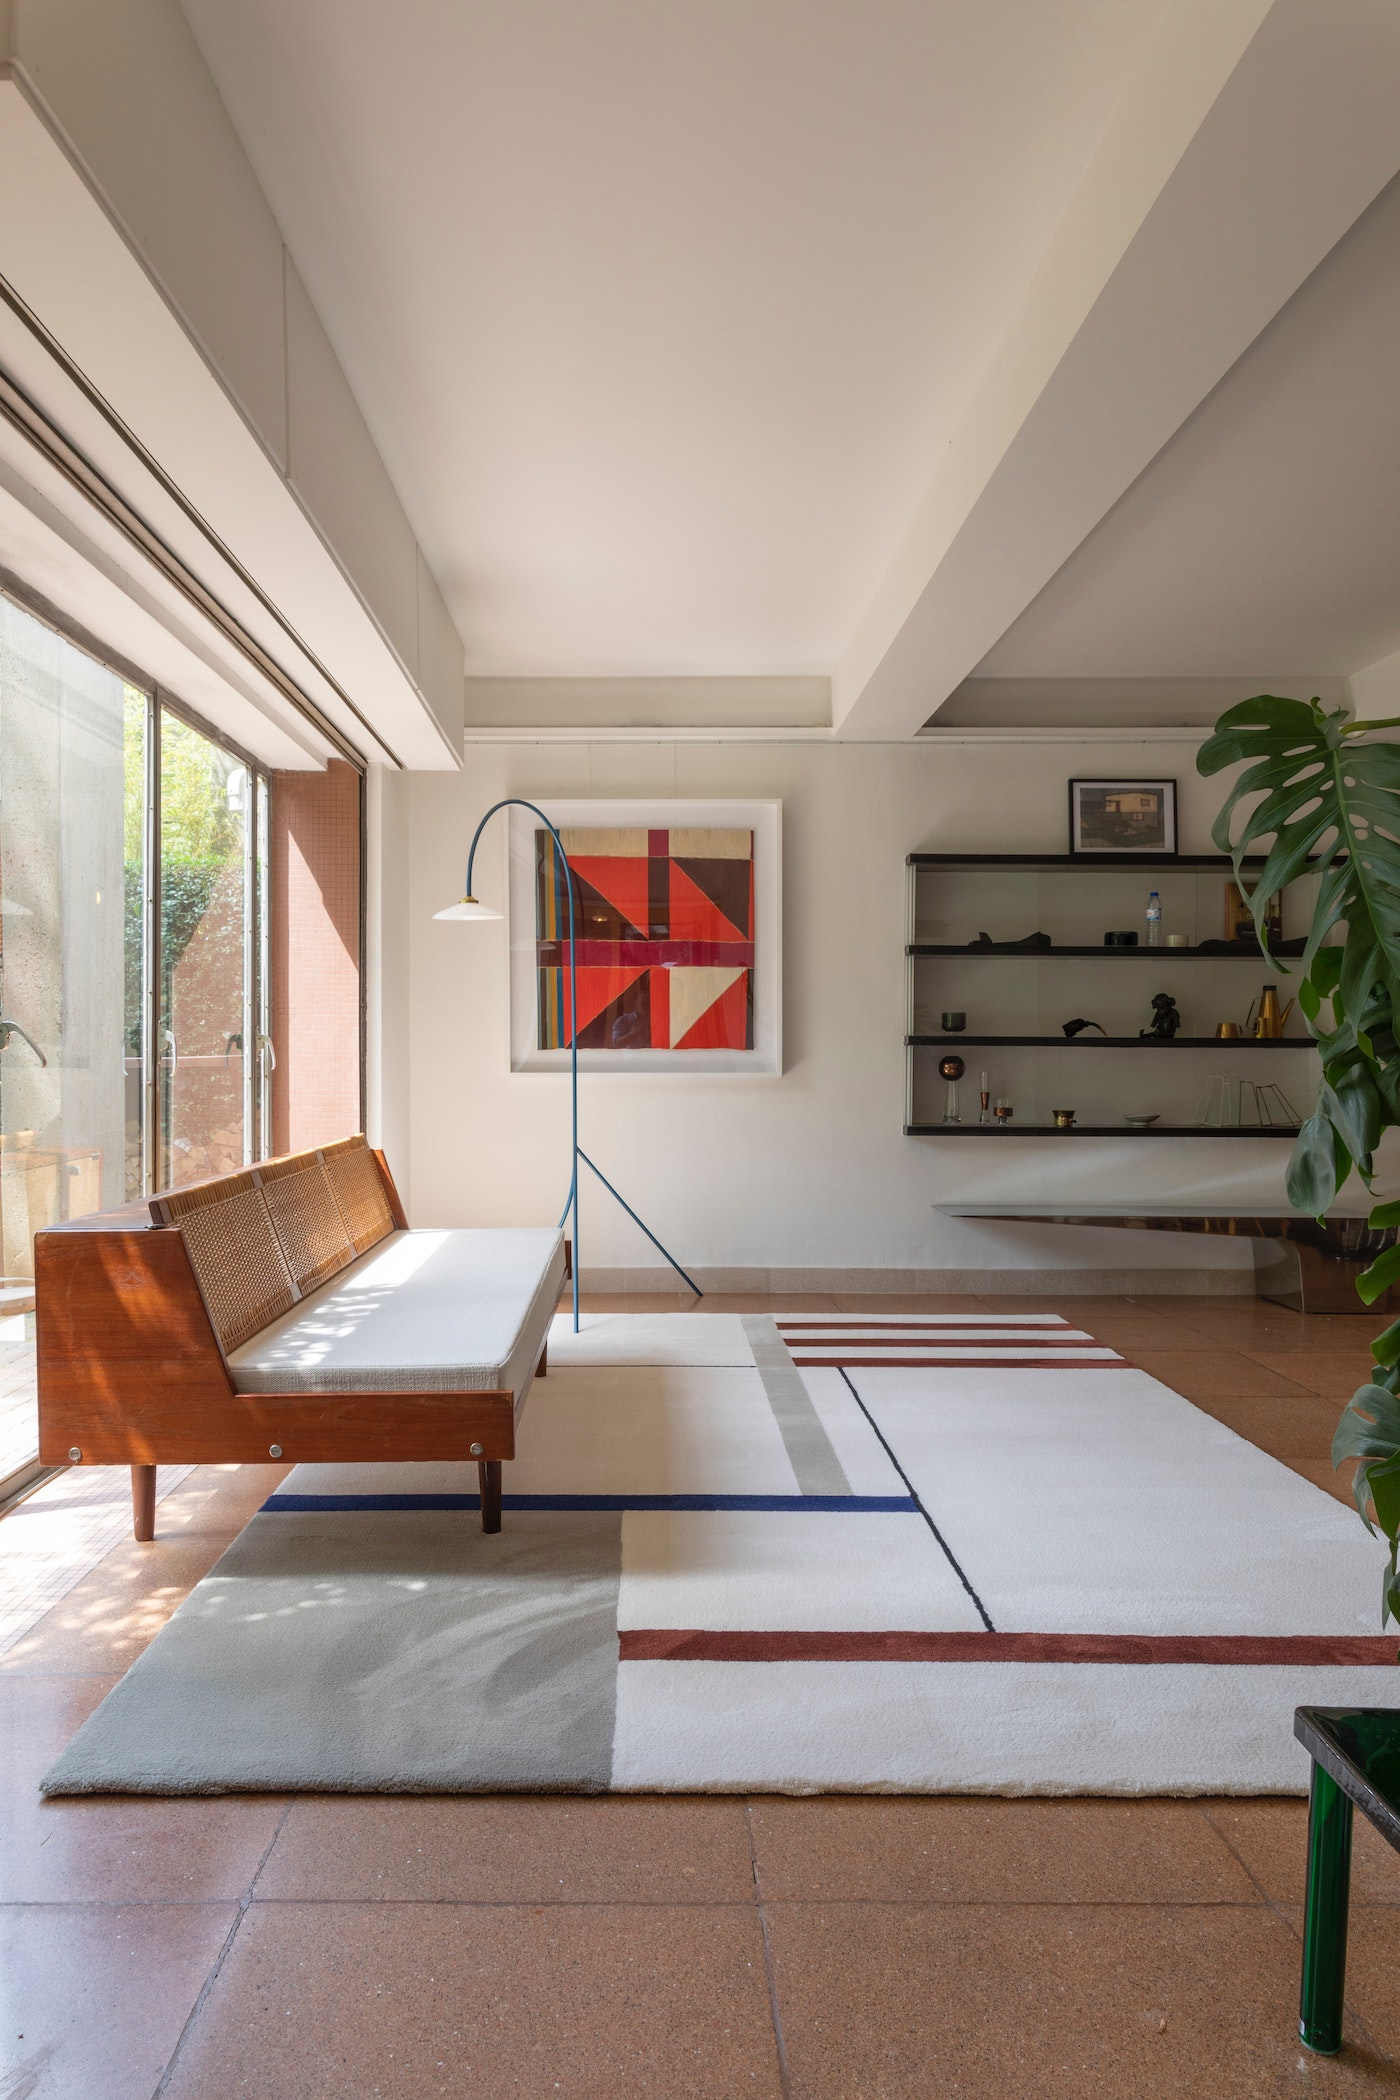 A living room with a graphic rug